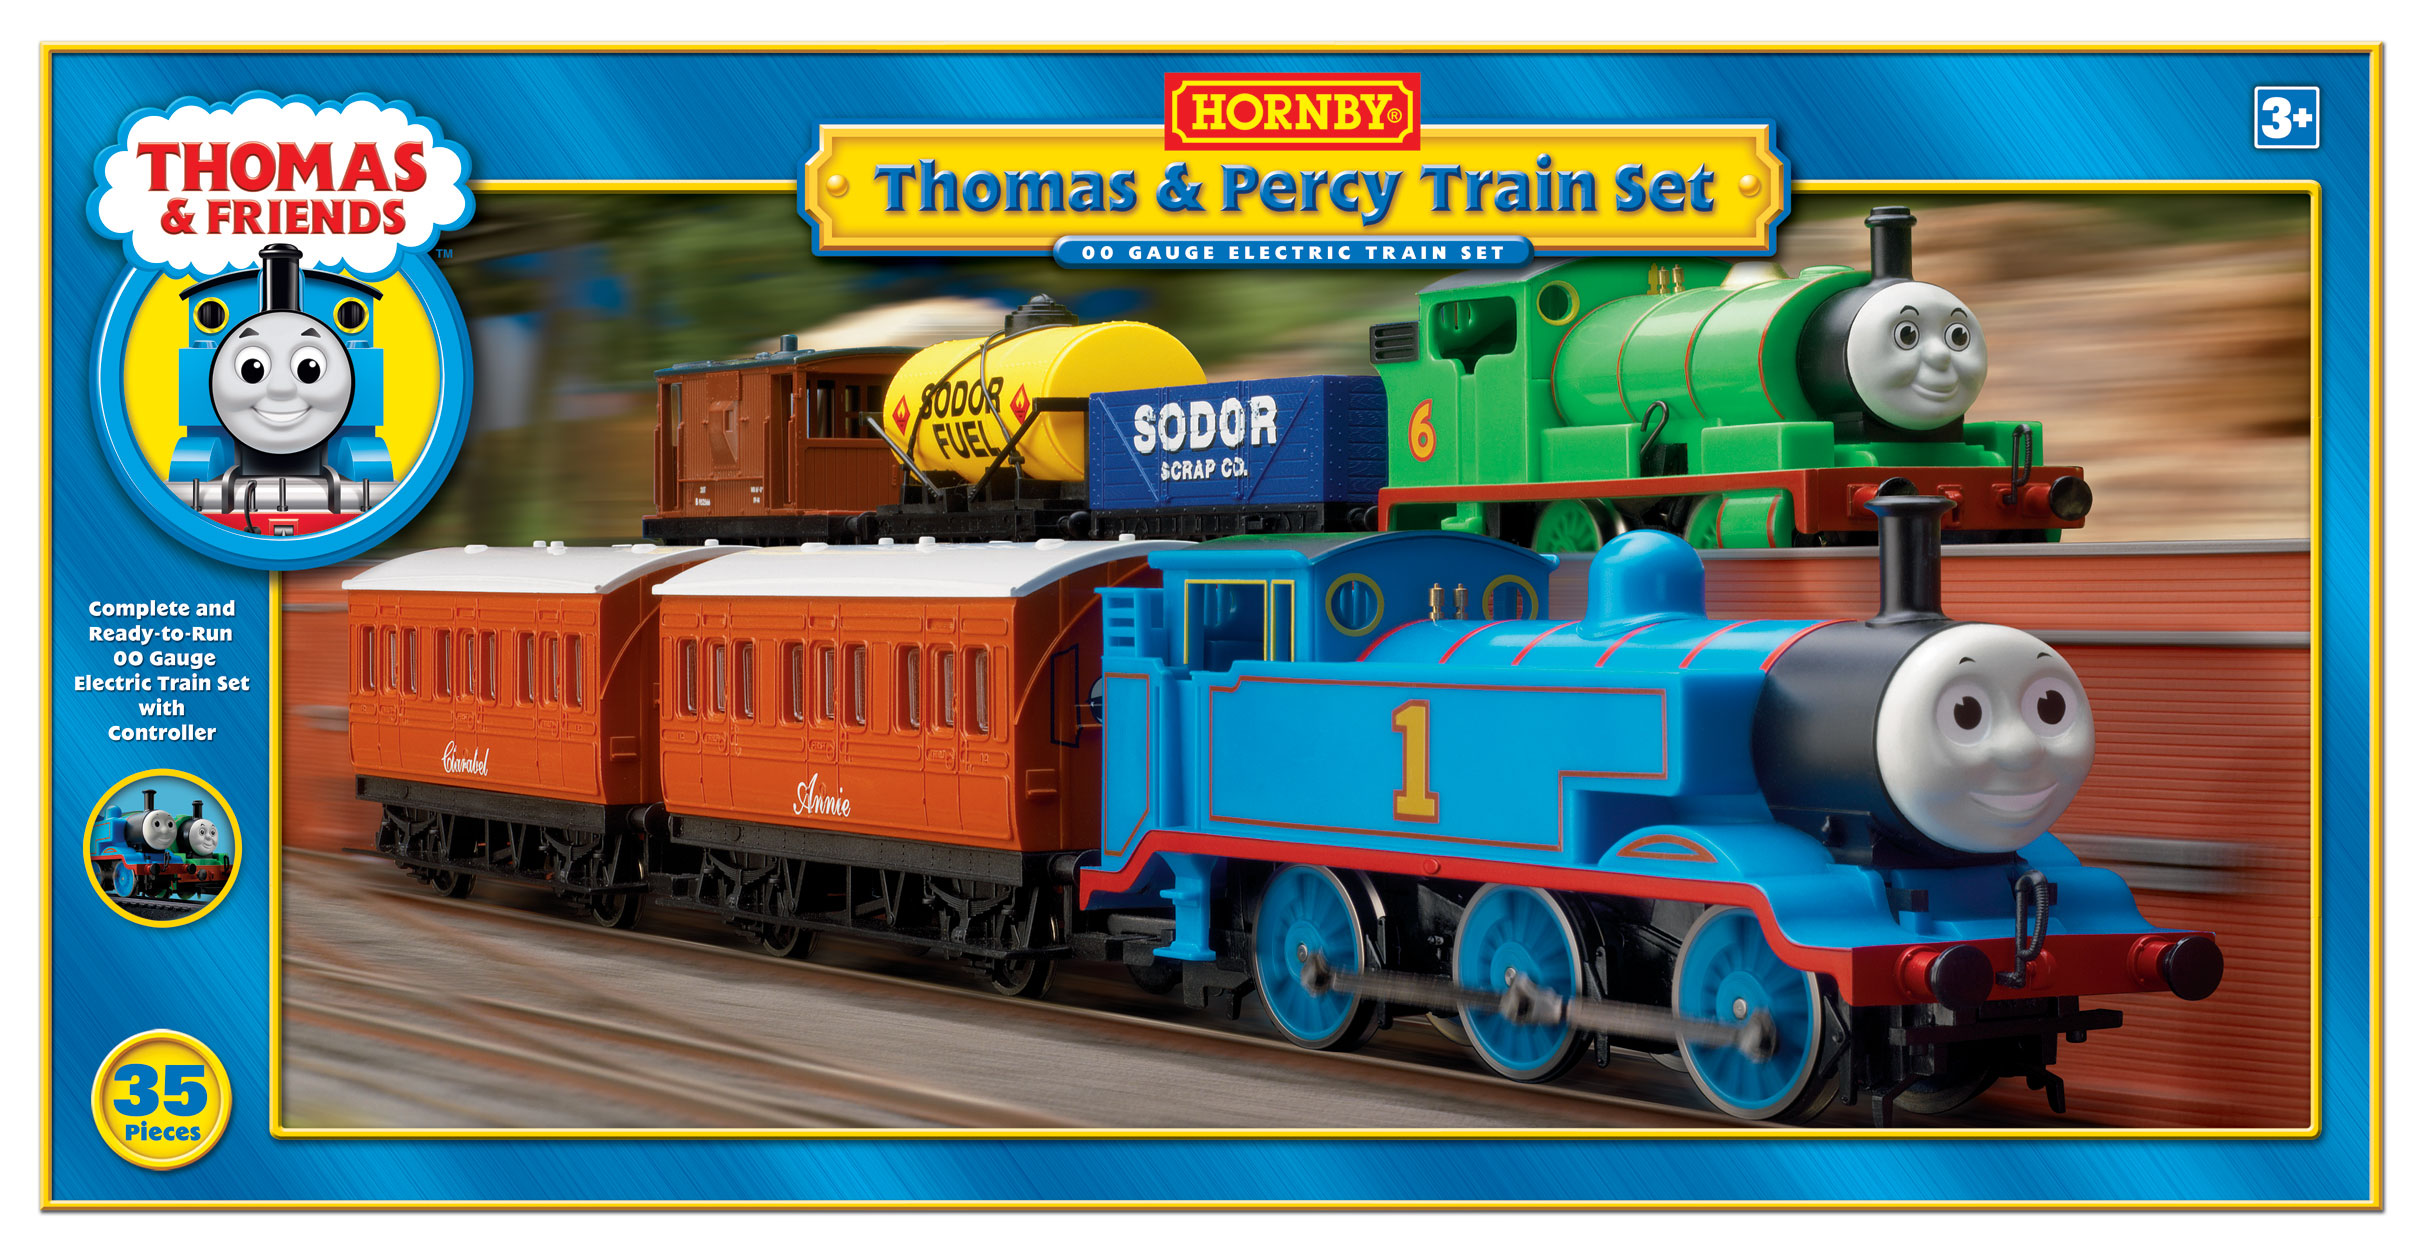 Hornby thomas train set uk version